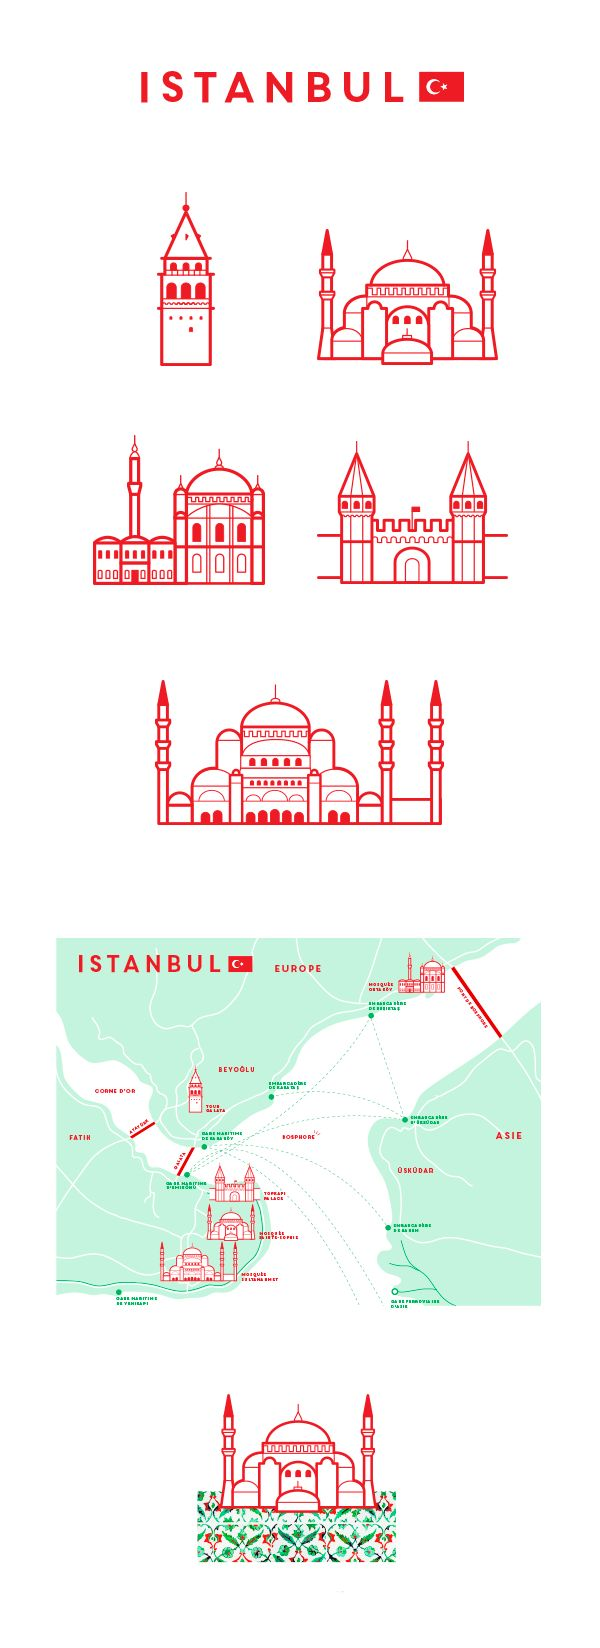 Pictograms for a touristic map of Istanbul, Turkey.